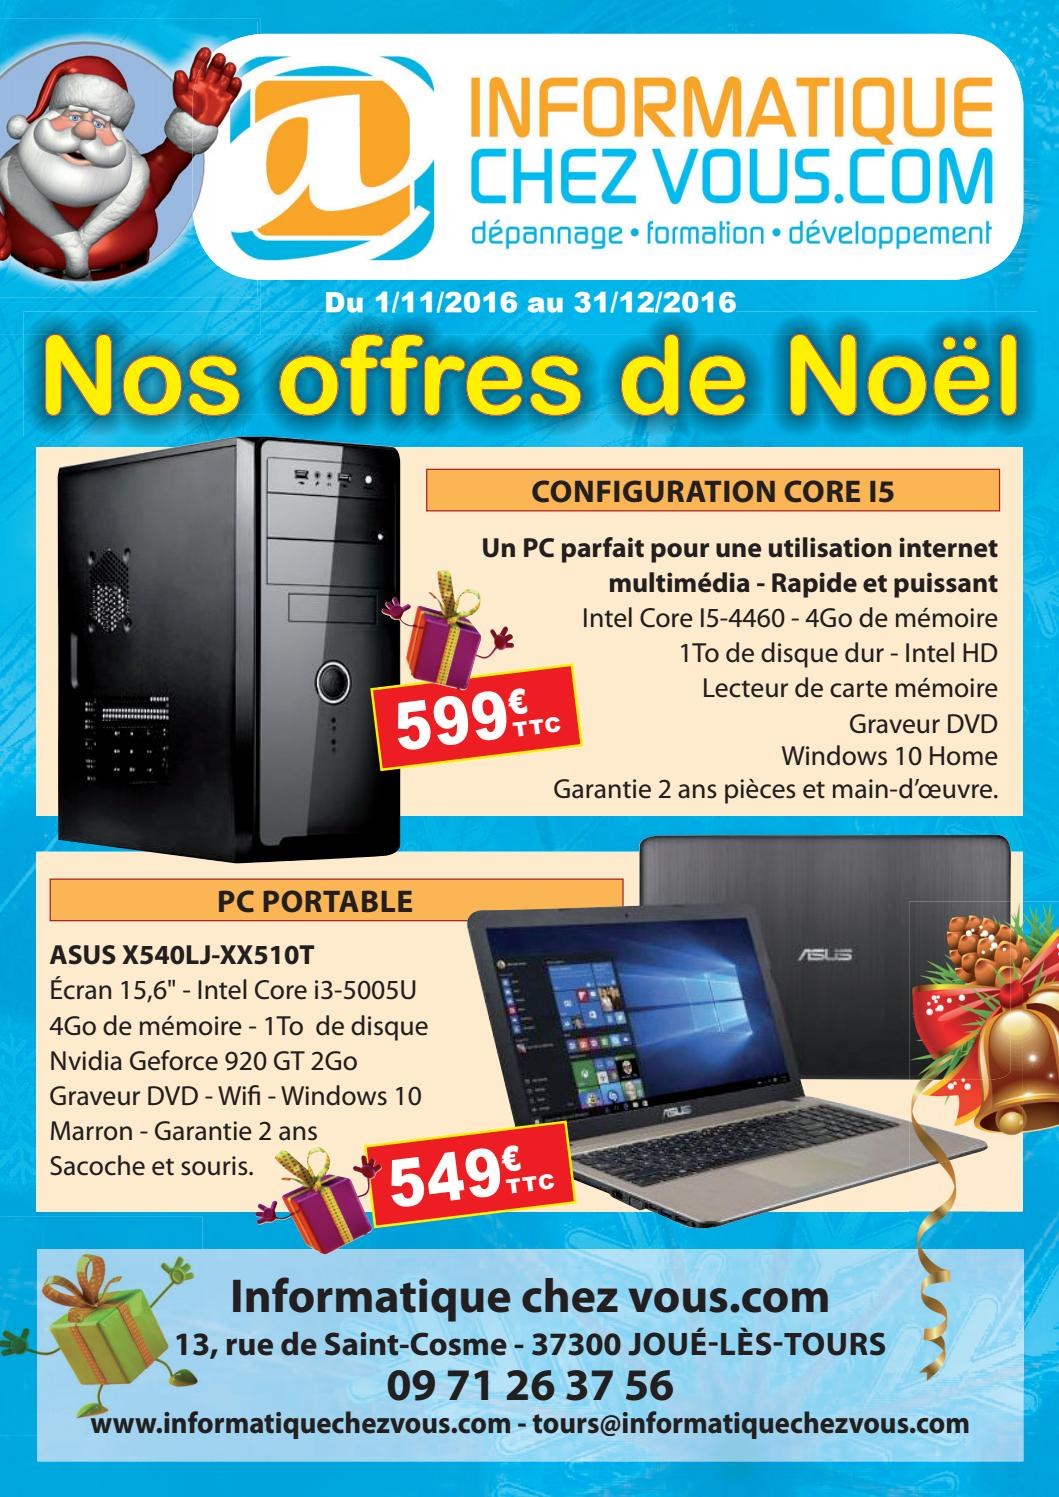 Carte De Noel Informatique.Informatique Chez Vous Catalogue De Noel 2016 By Sylvain